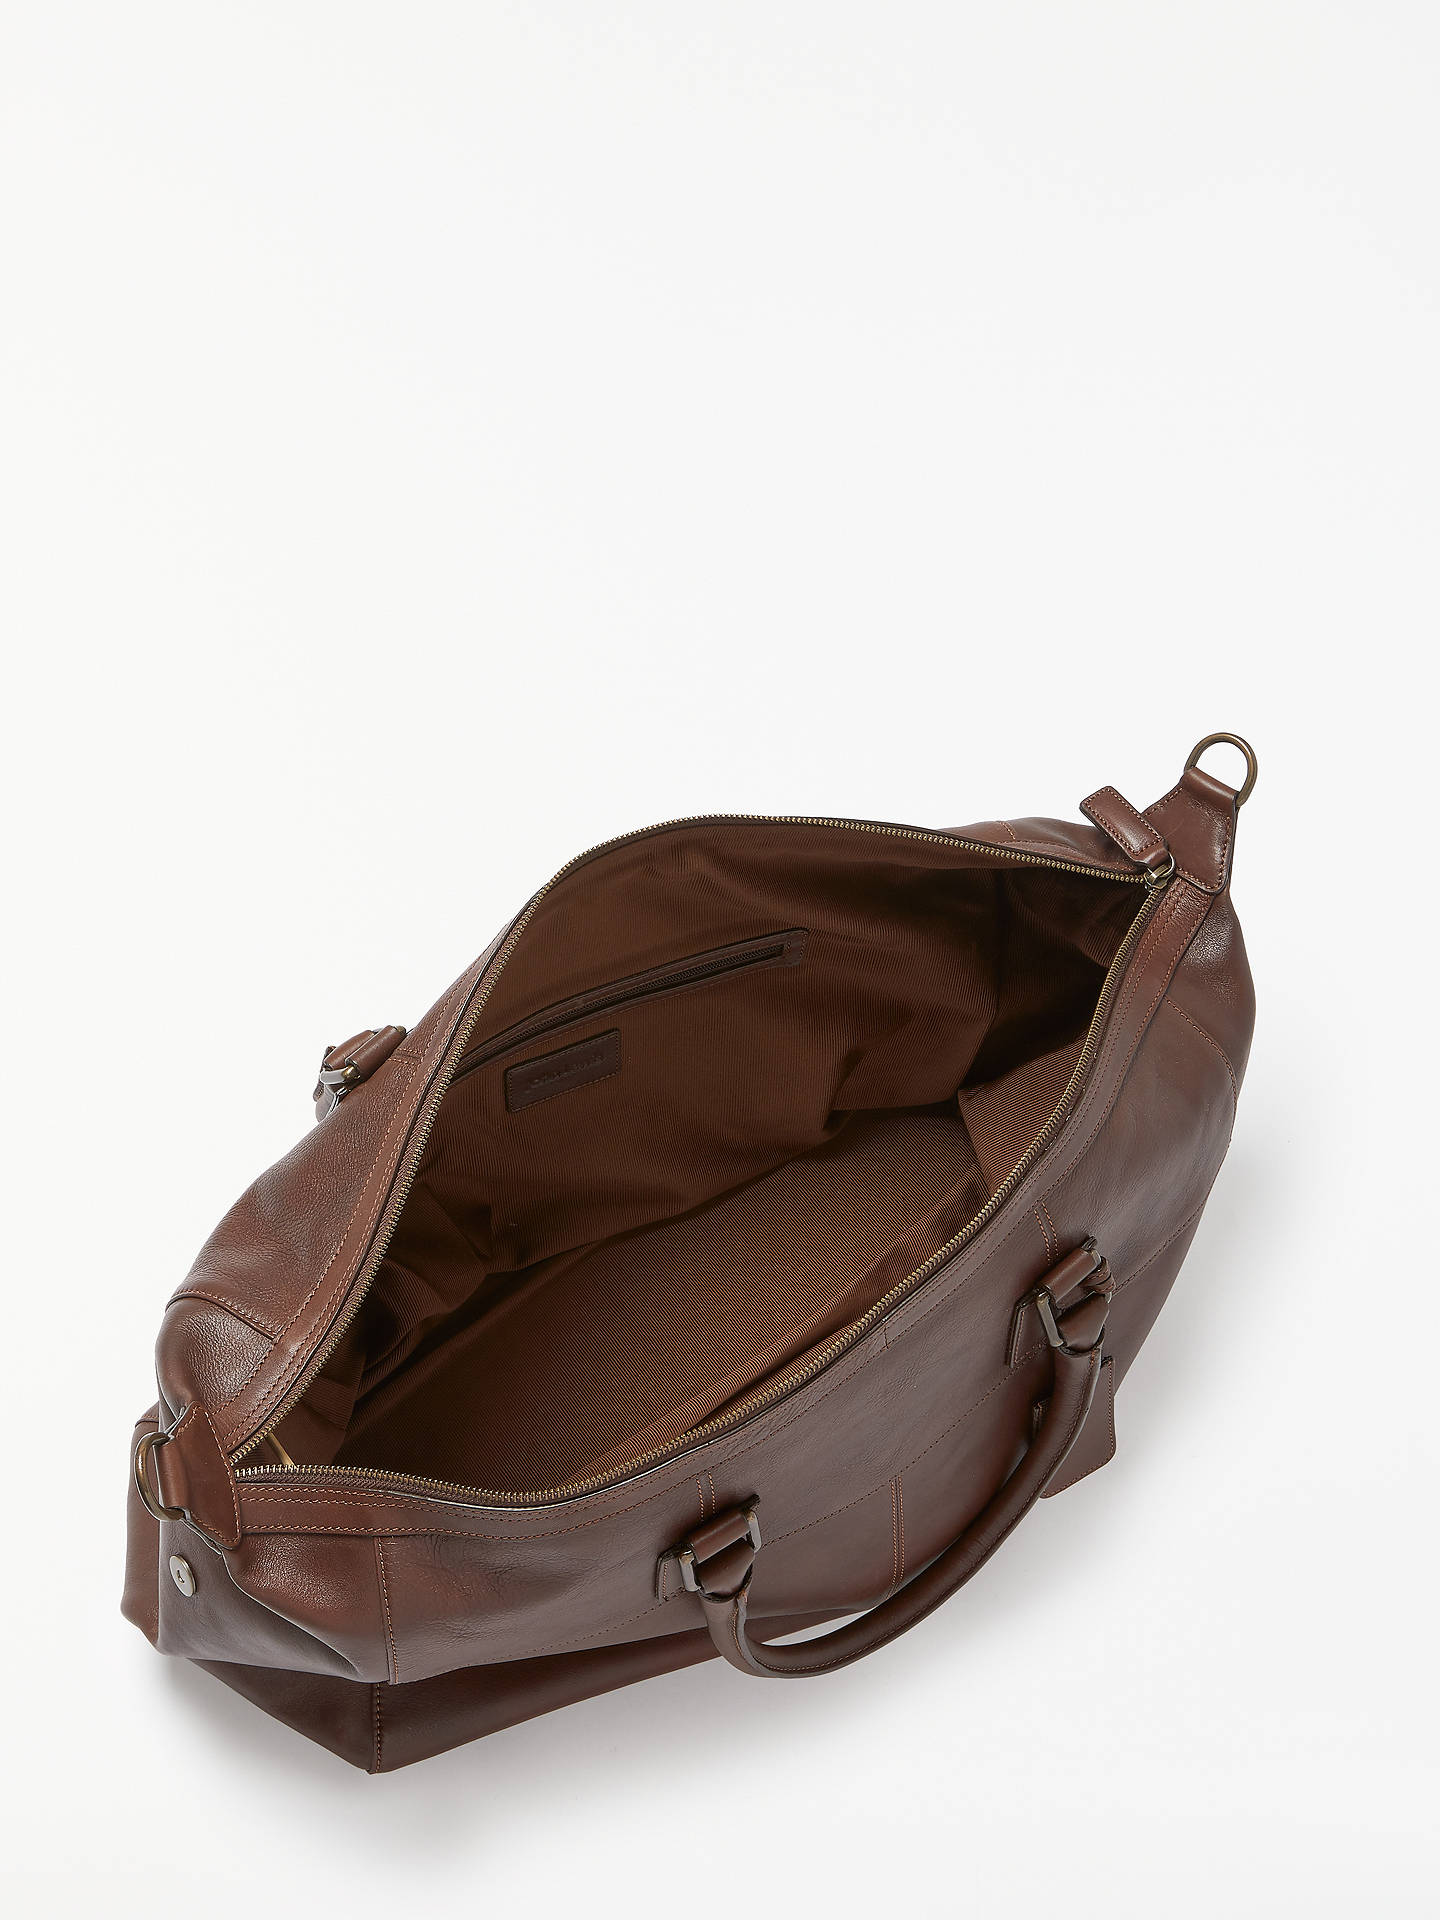 BuyJohn Lewis & Partners Gladstone 2.0 Leather Holdall, Brown Online at johnlewis.com